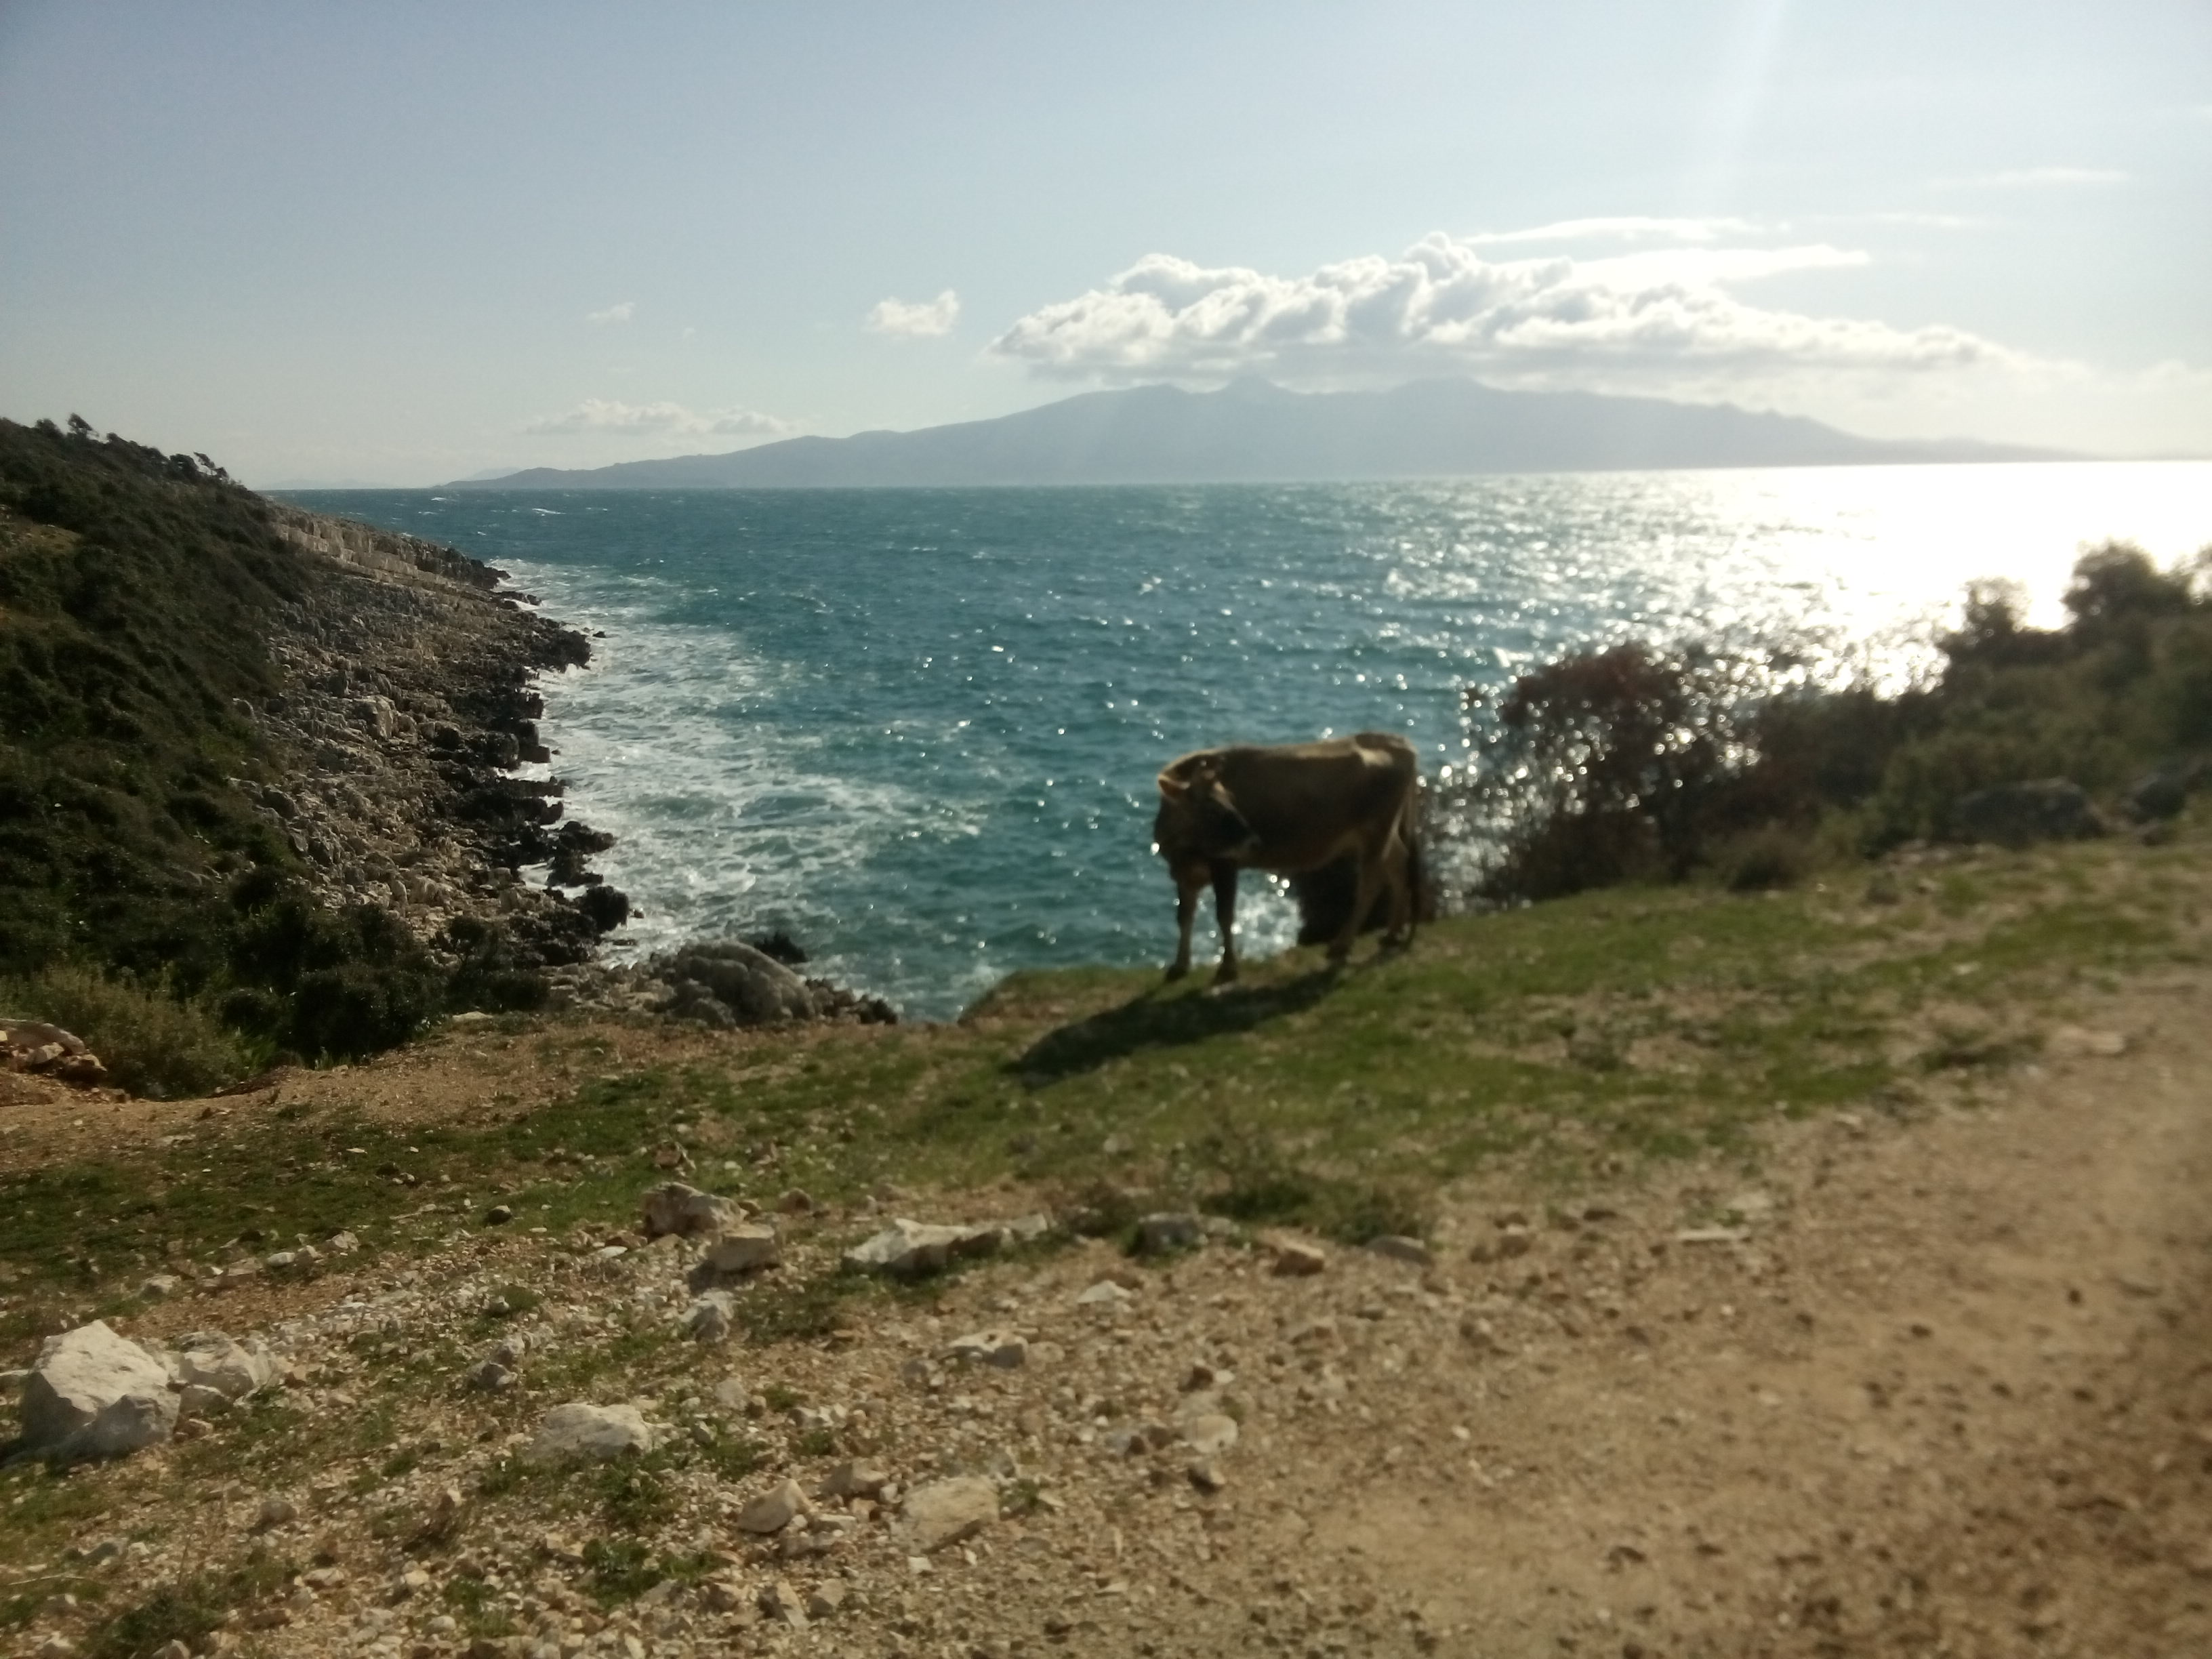 A cow grazes on a rocky trail with the sea and Corfu island in the background